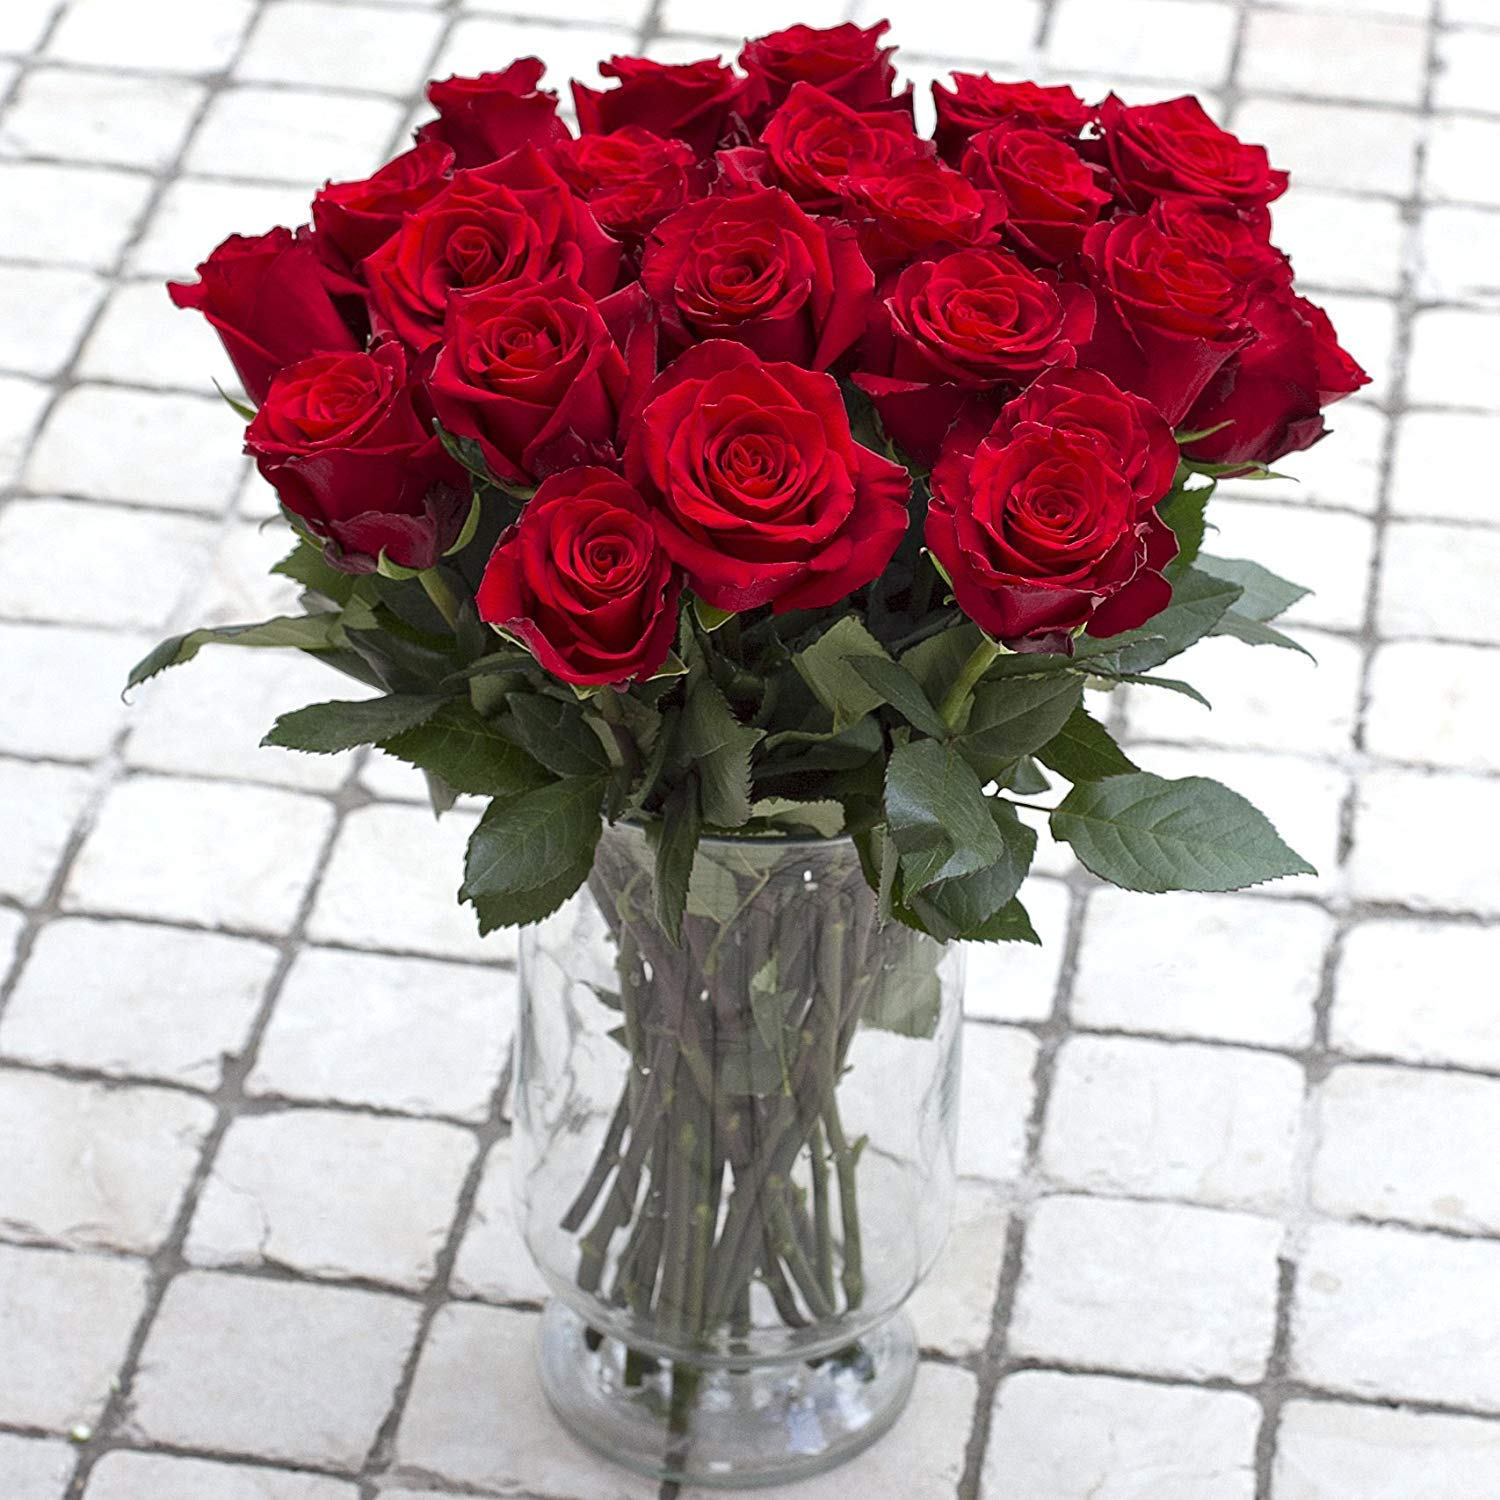 Green Choice Flowers - 24 (2 Dozen) Premium Red Fresh Roses with 20 inch Long Stem Farm Fresh Flowers Beautiful Red Rose Flower Cut Per Order Direct from Farm Fast Free Delivery Long Lasting by Greenchoiceflowers (Image #3)